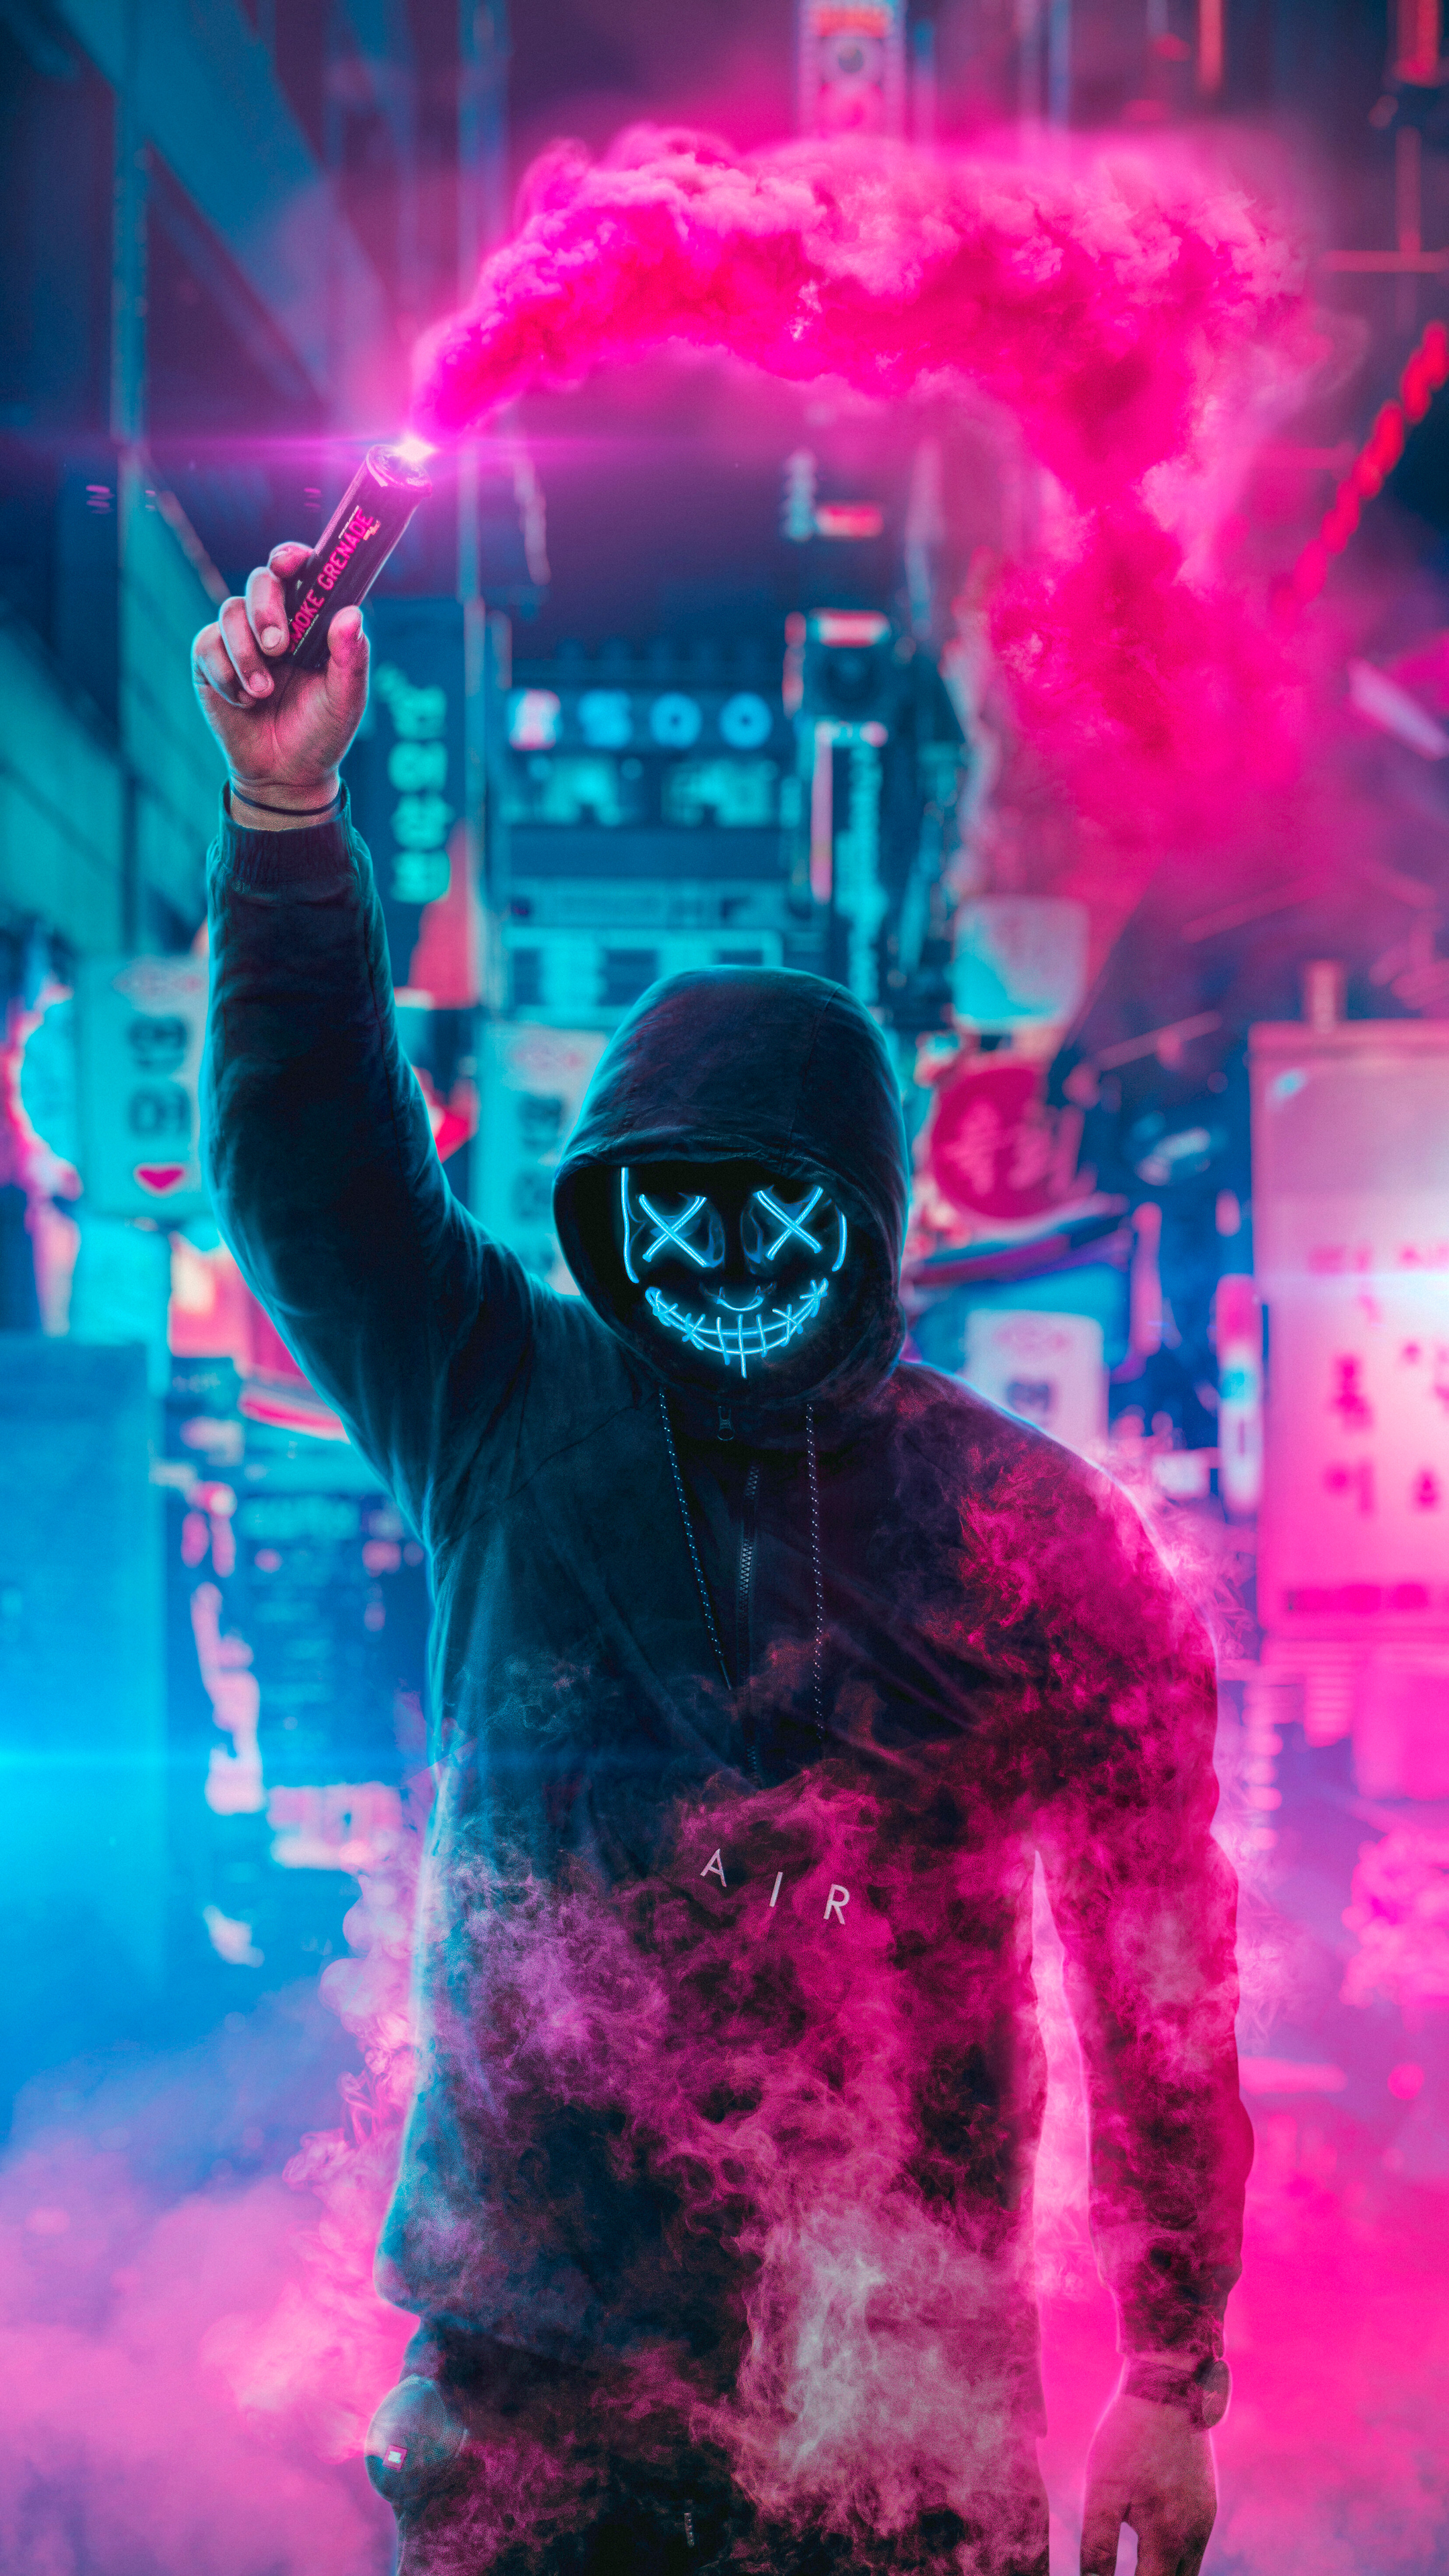 2160x3840 Mask Guy Neon Eye Sony Xperia X Xz Z5 Premium Hd 4k Wallpapers Images Backgrounds